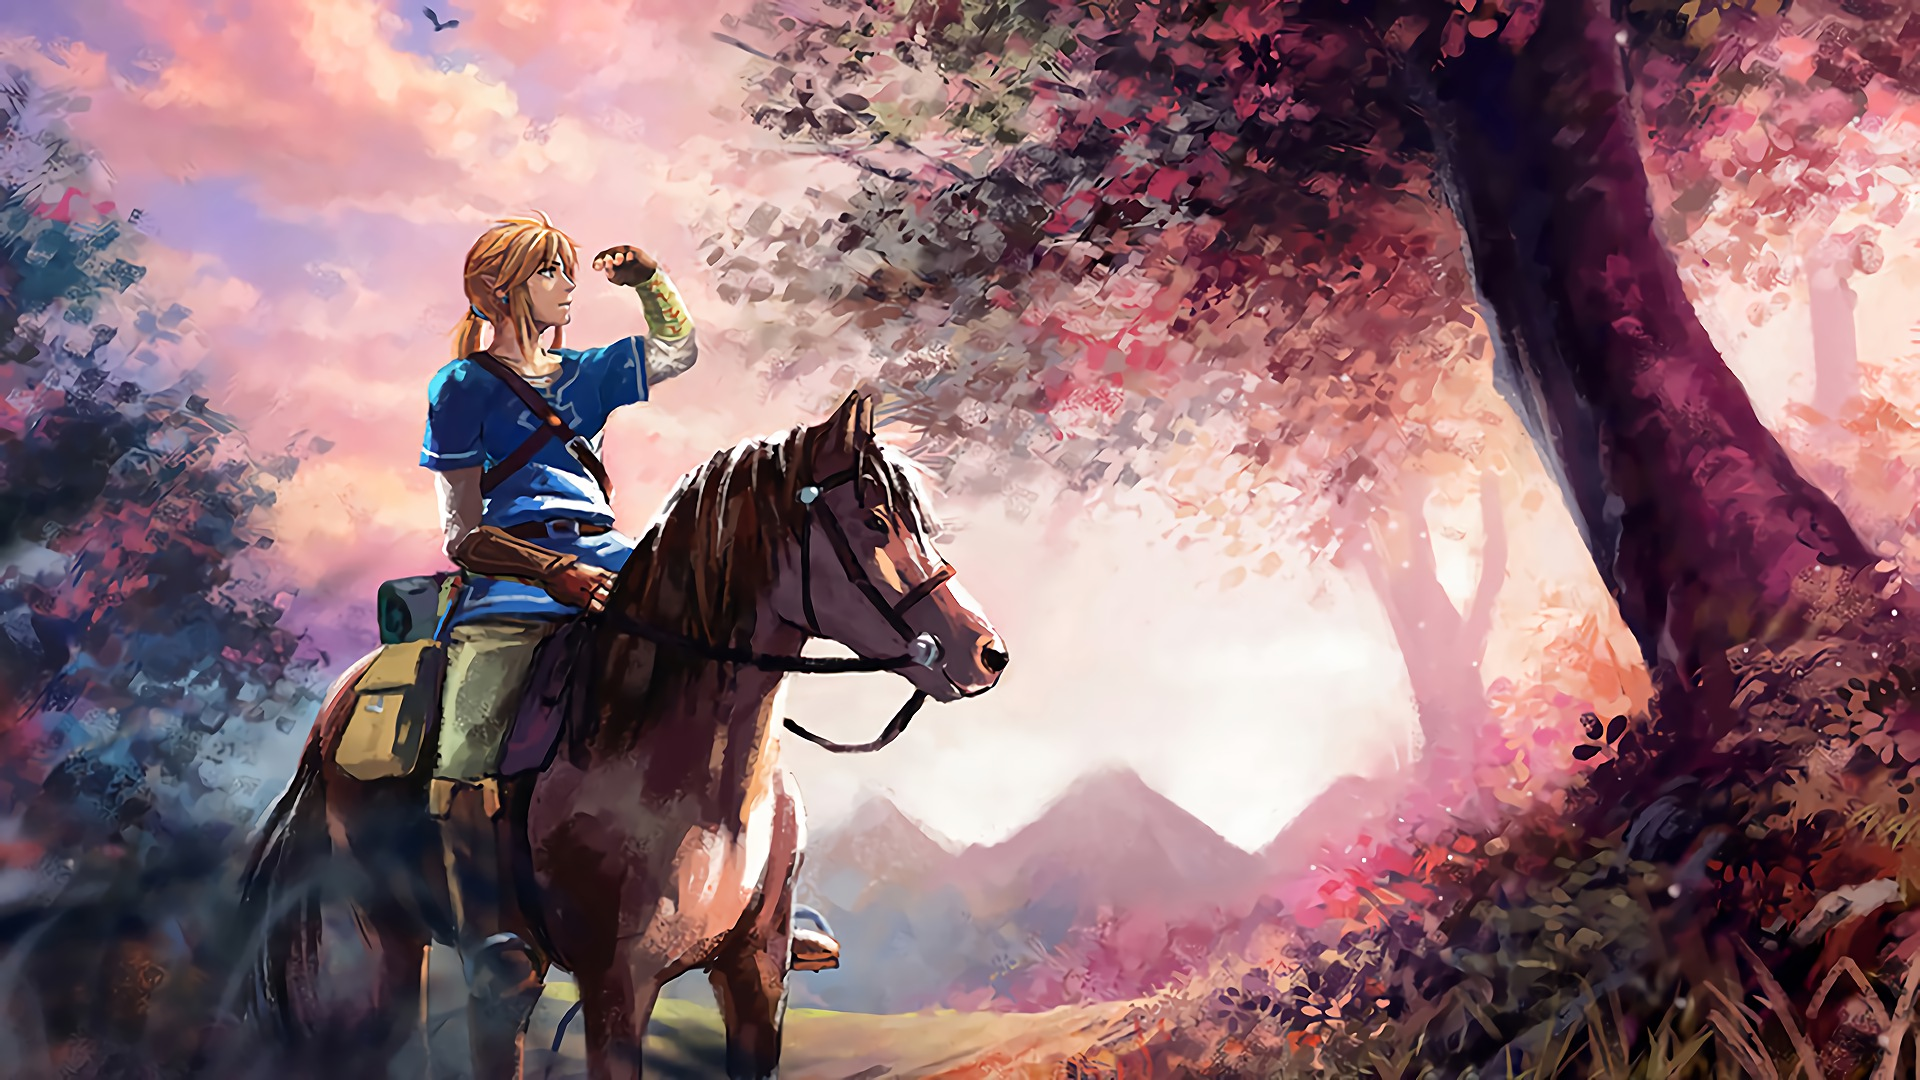 Legend Of Zelda Breath Of The Wild Horse 300984 Hd